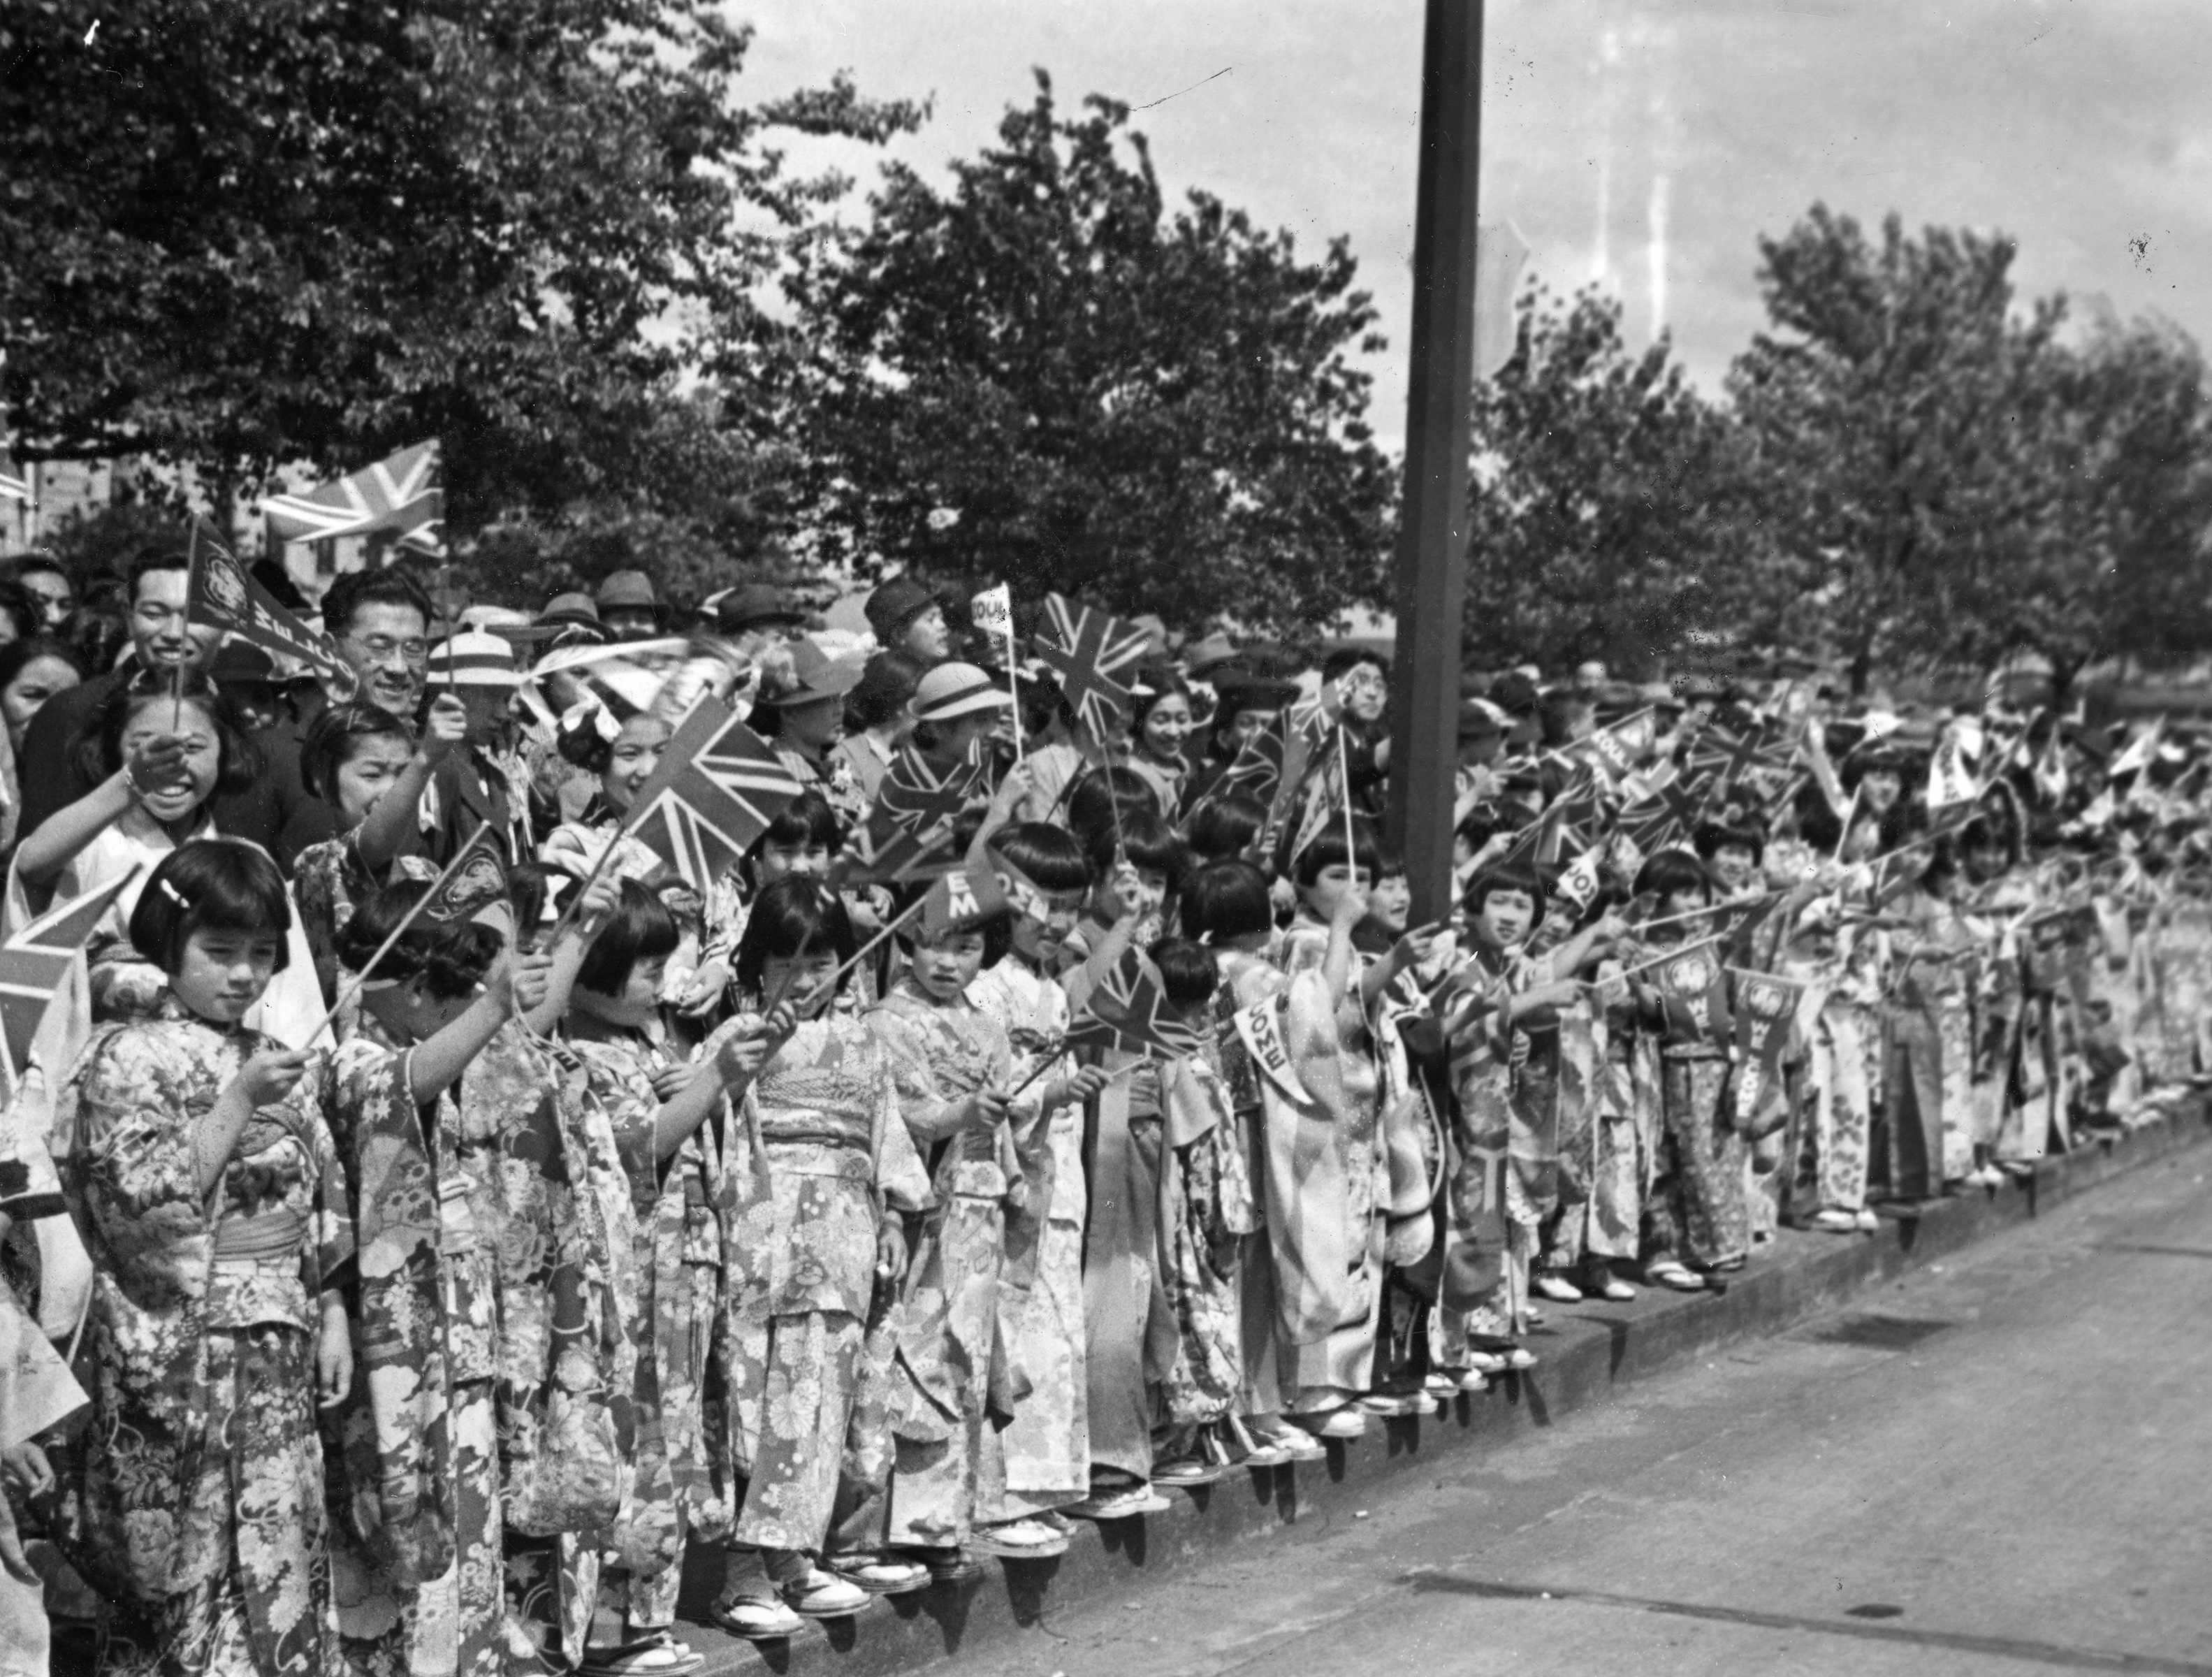 In this photo, rows of girls and young women in kimono along a street wave the Union Jack as the Royal entourage comes their way.